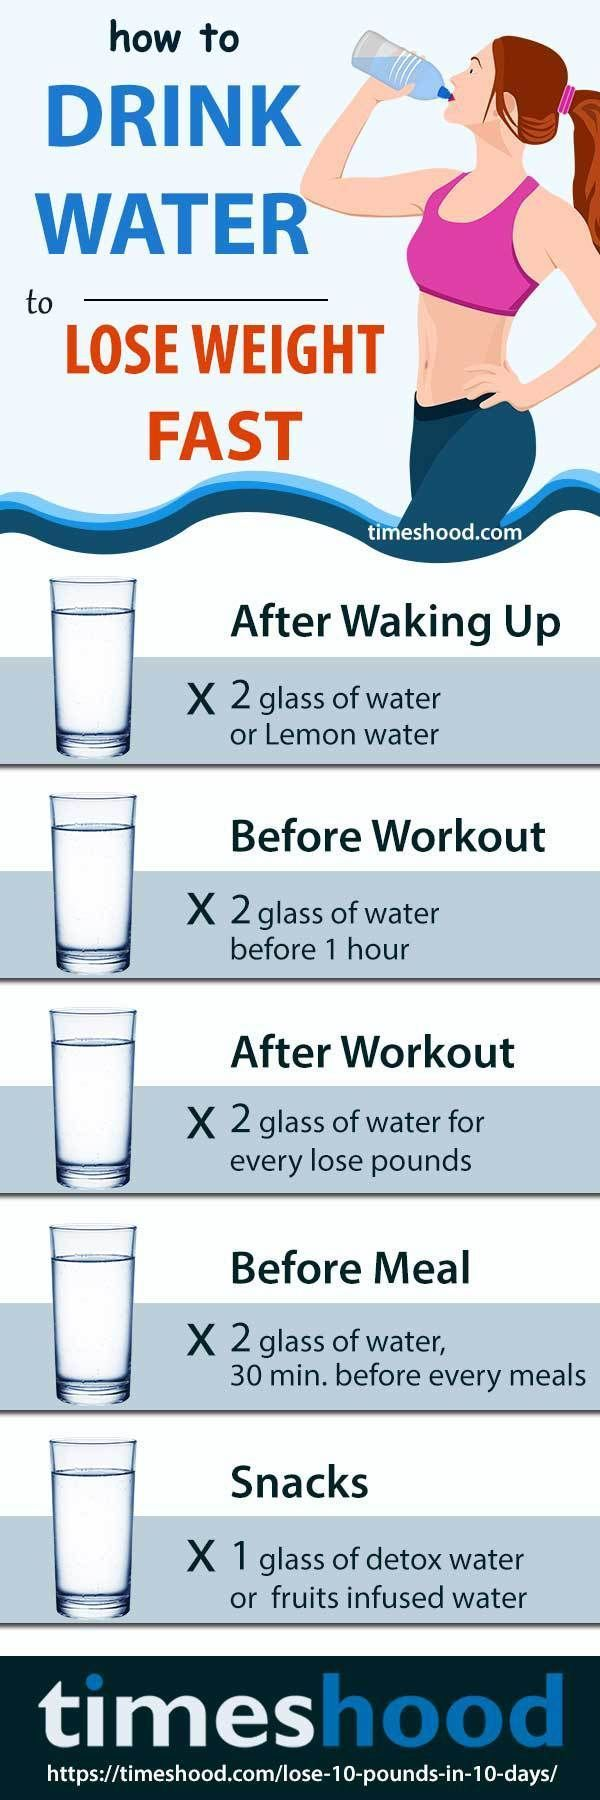 45 best mijn pippi langkous cv images on pinterest chistes 80 s check out 1000 calories workout plan to lose weight fast drinking water for weight loss drink 8 to 10 glass of water fandeluxe Image collections